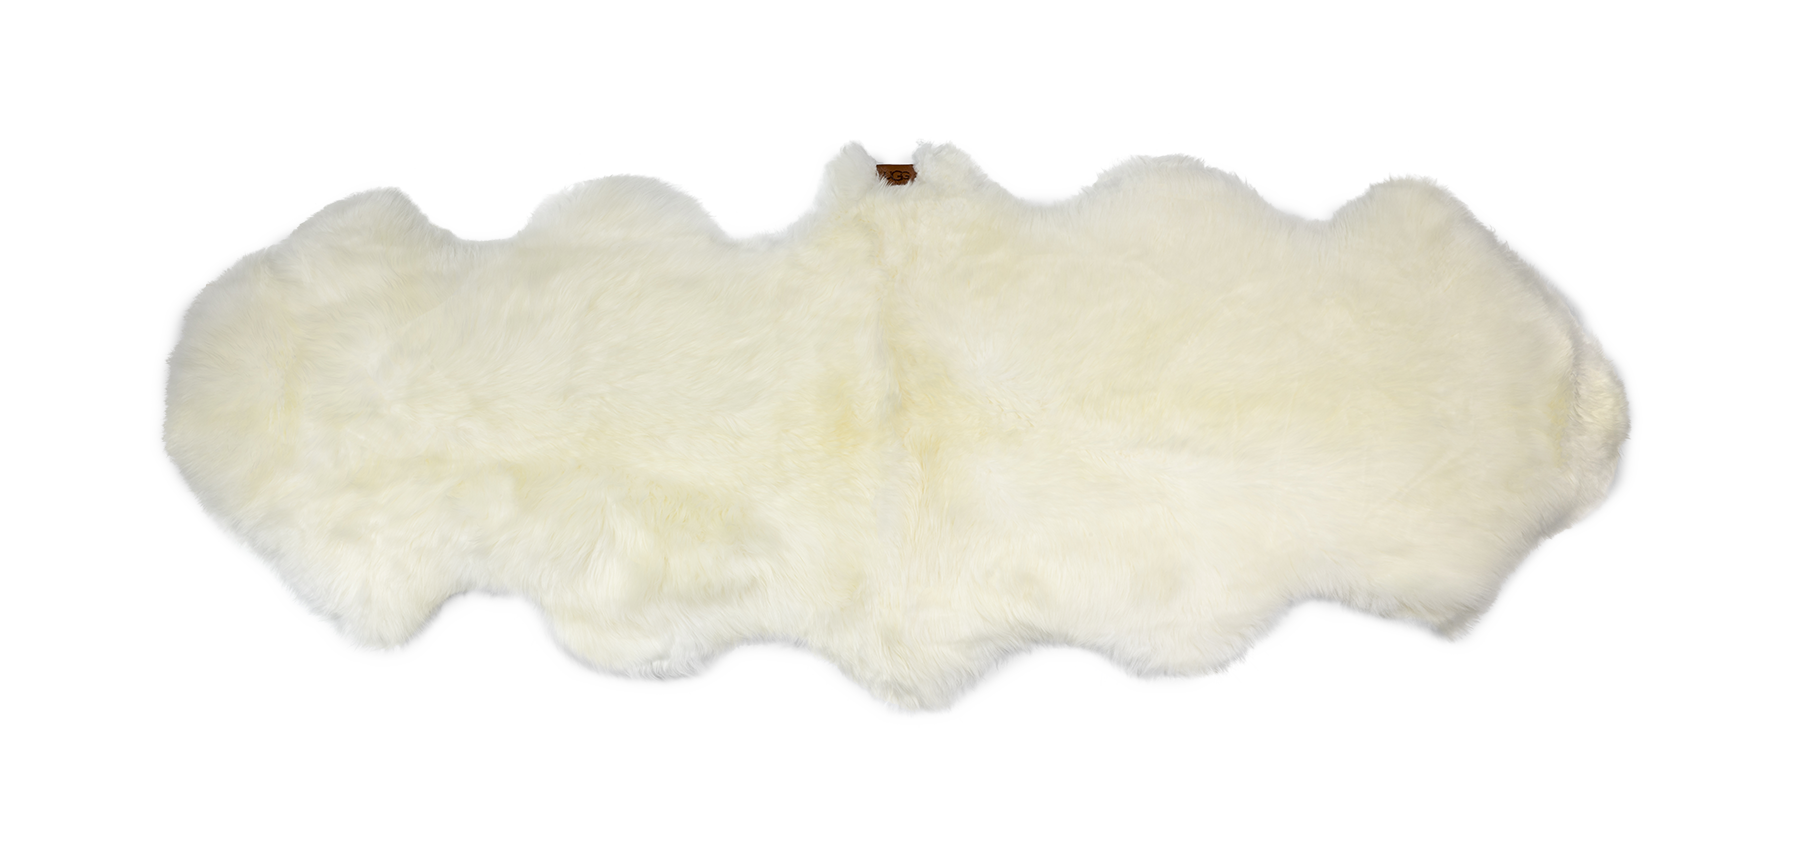 UGG Sheepskin Area Rug - Double Rugs in White A sophisticated design element with surprising versatility, this rug makes a modern statement in any setting. Crafted from premium New Zealand sheepskin, it feels just as luxurious as it looks. Details:. Sheepskin. 2' x 6'. UGG Sheepskin Area Rug - Double Rugs in White